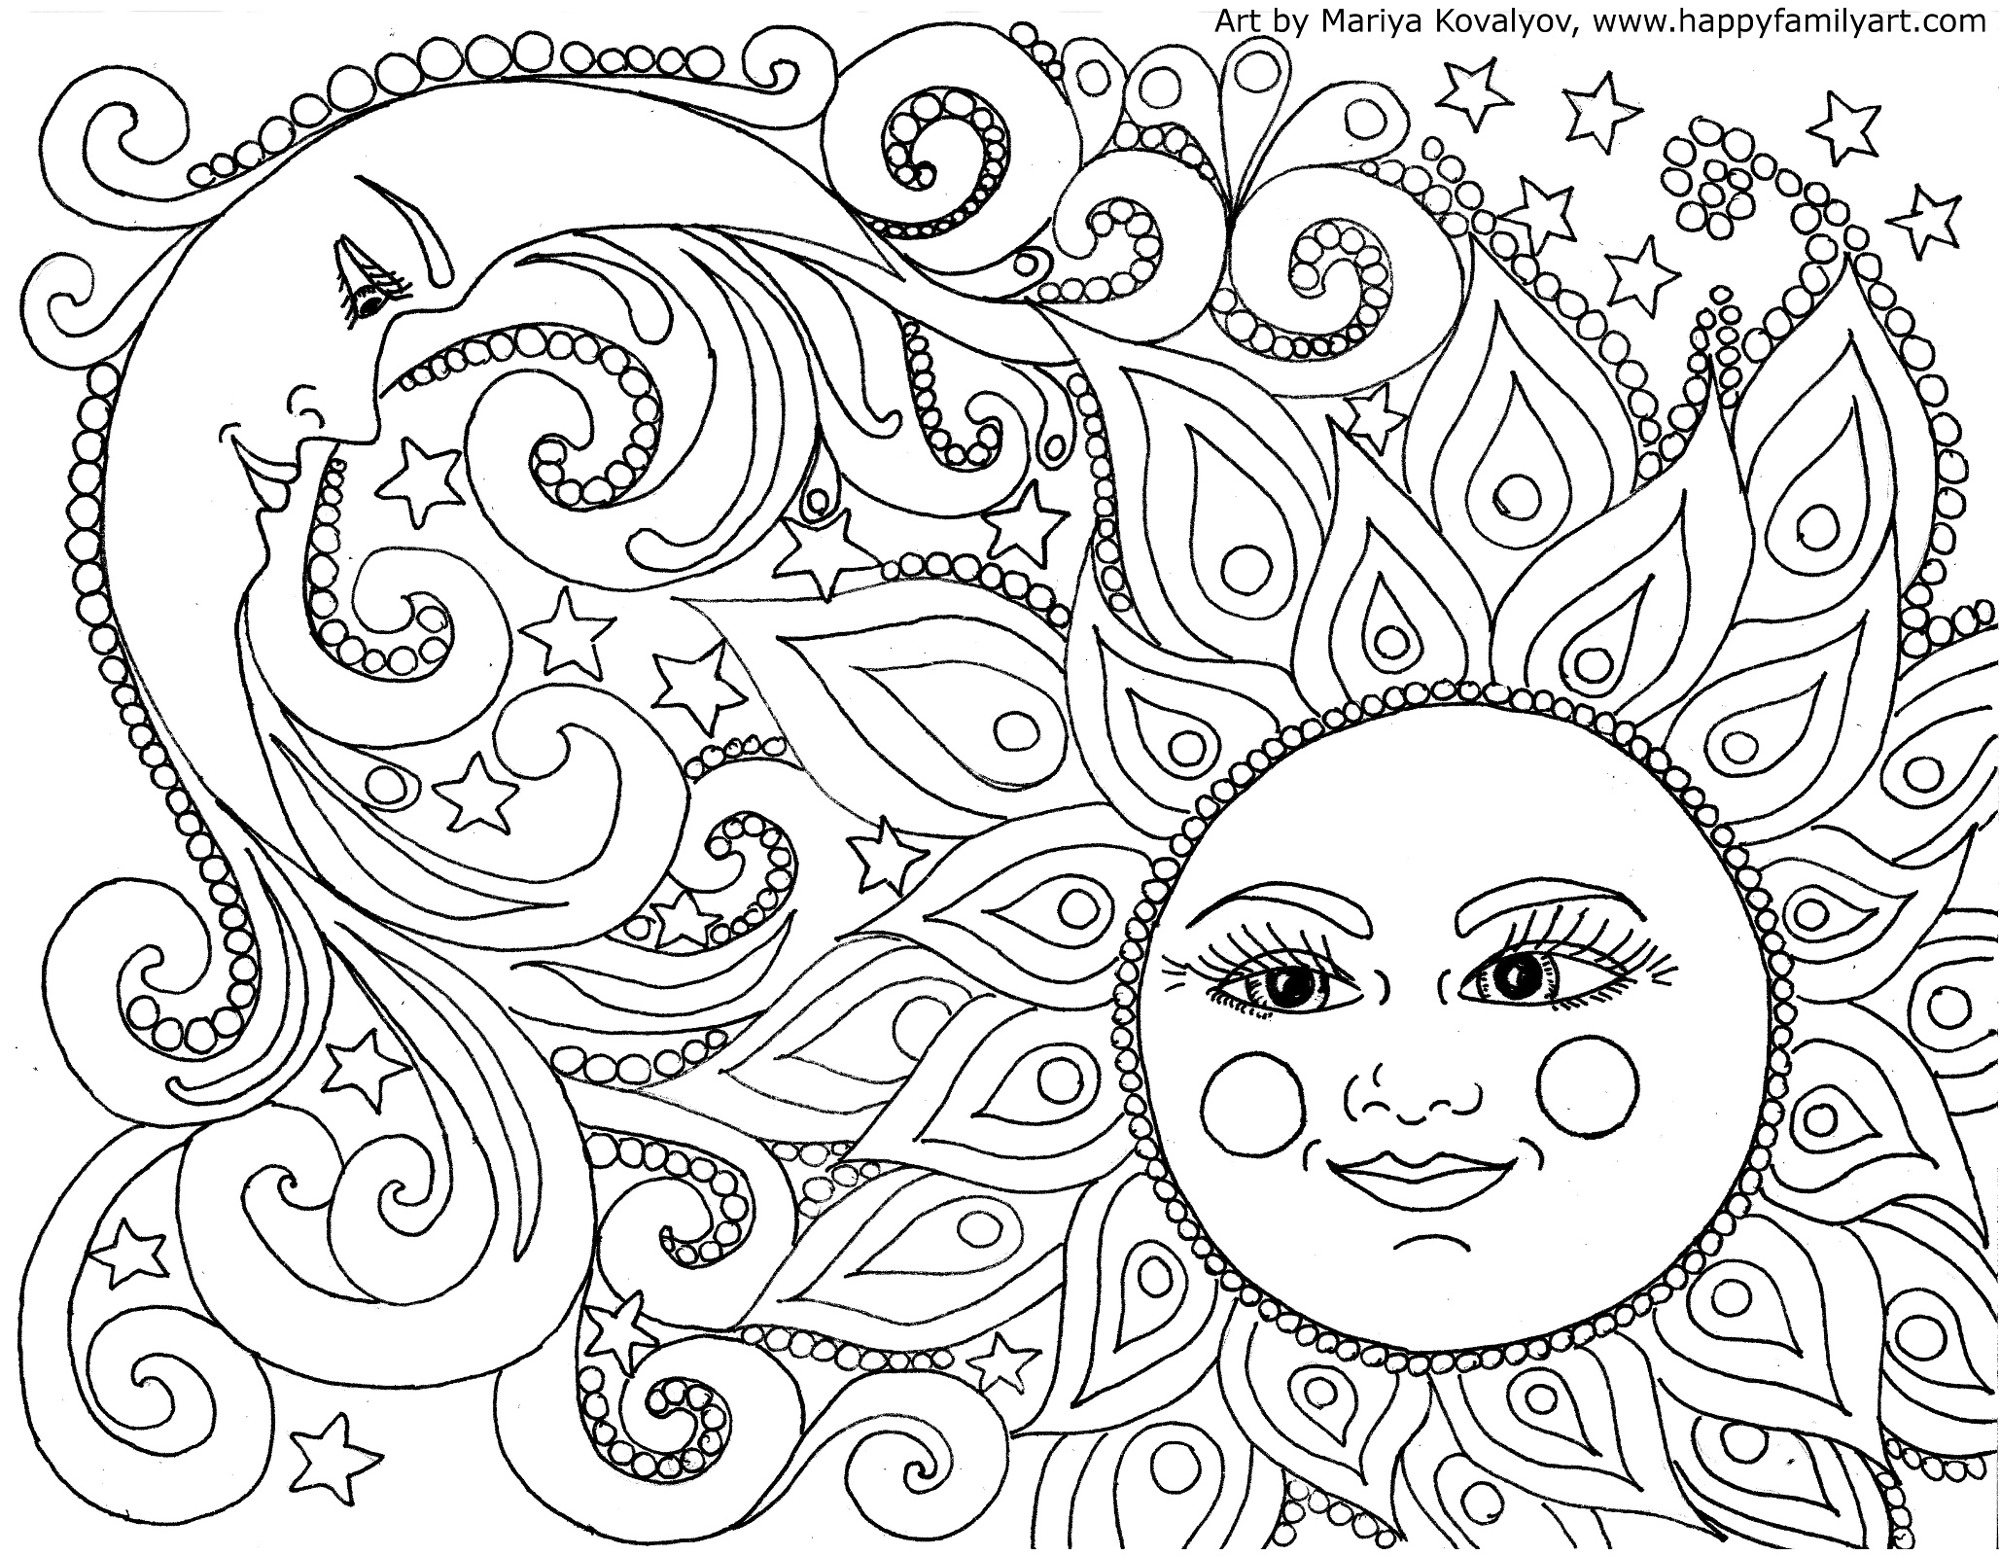 2000x1556 Skill Landscape Coloring Pages For Kids Printa